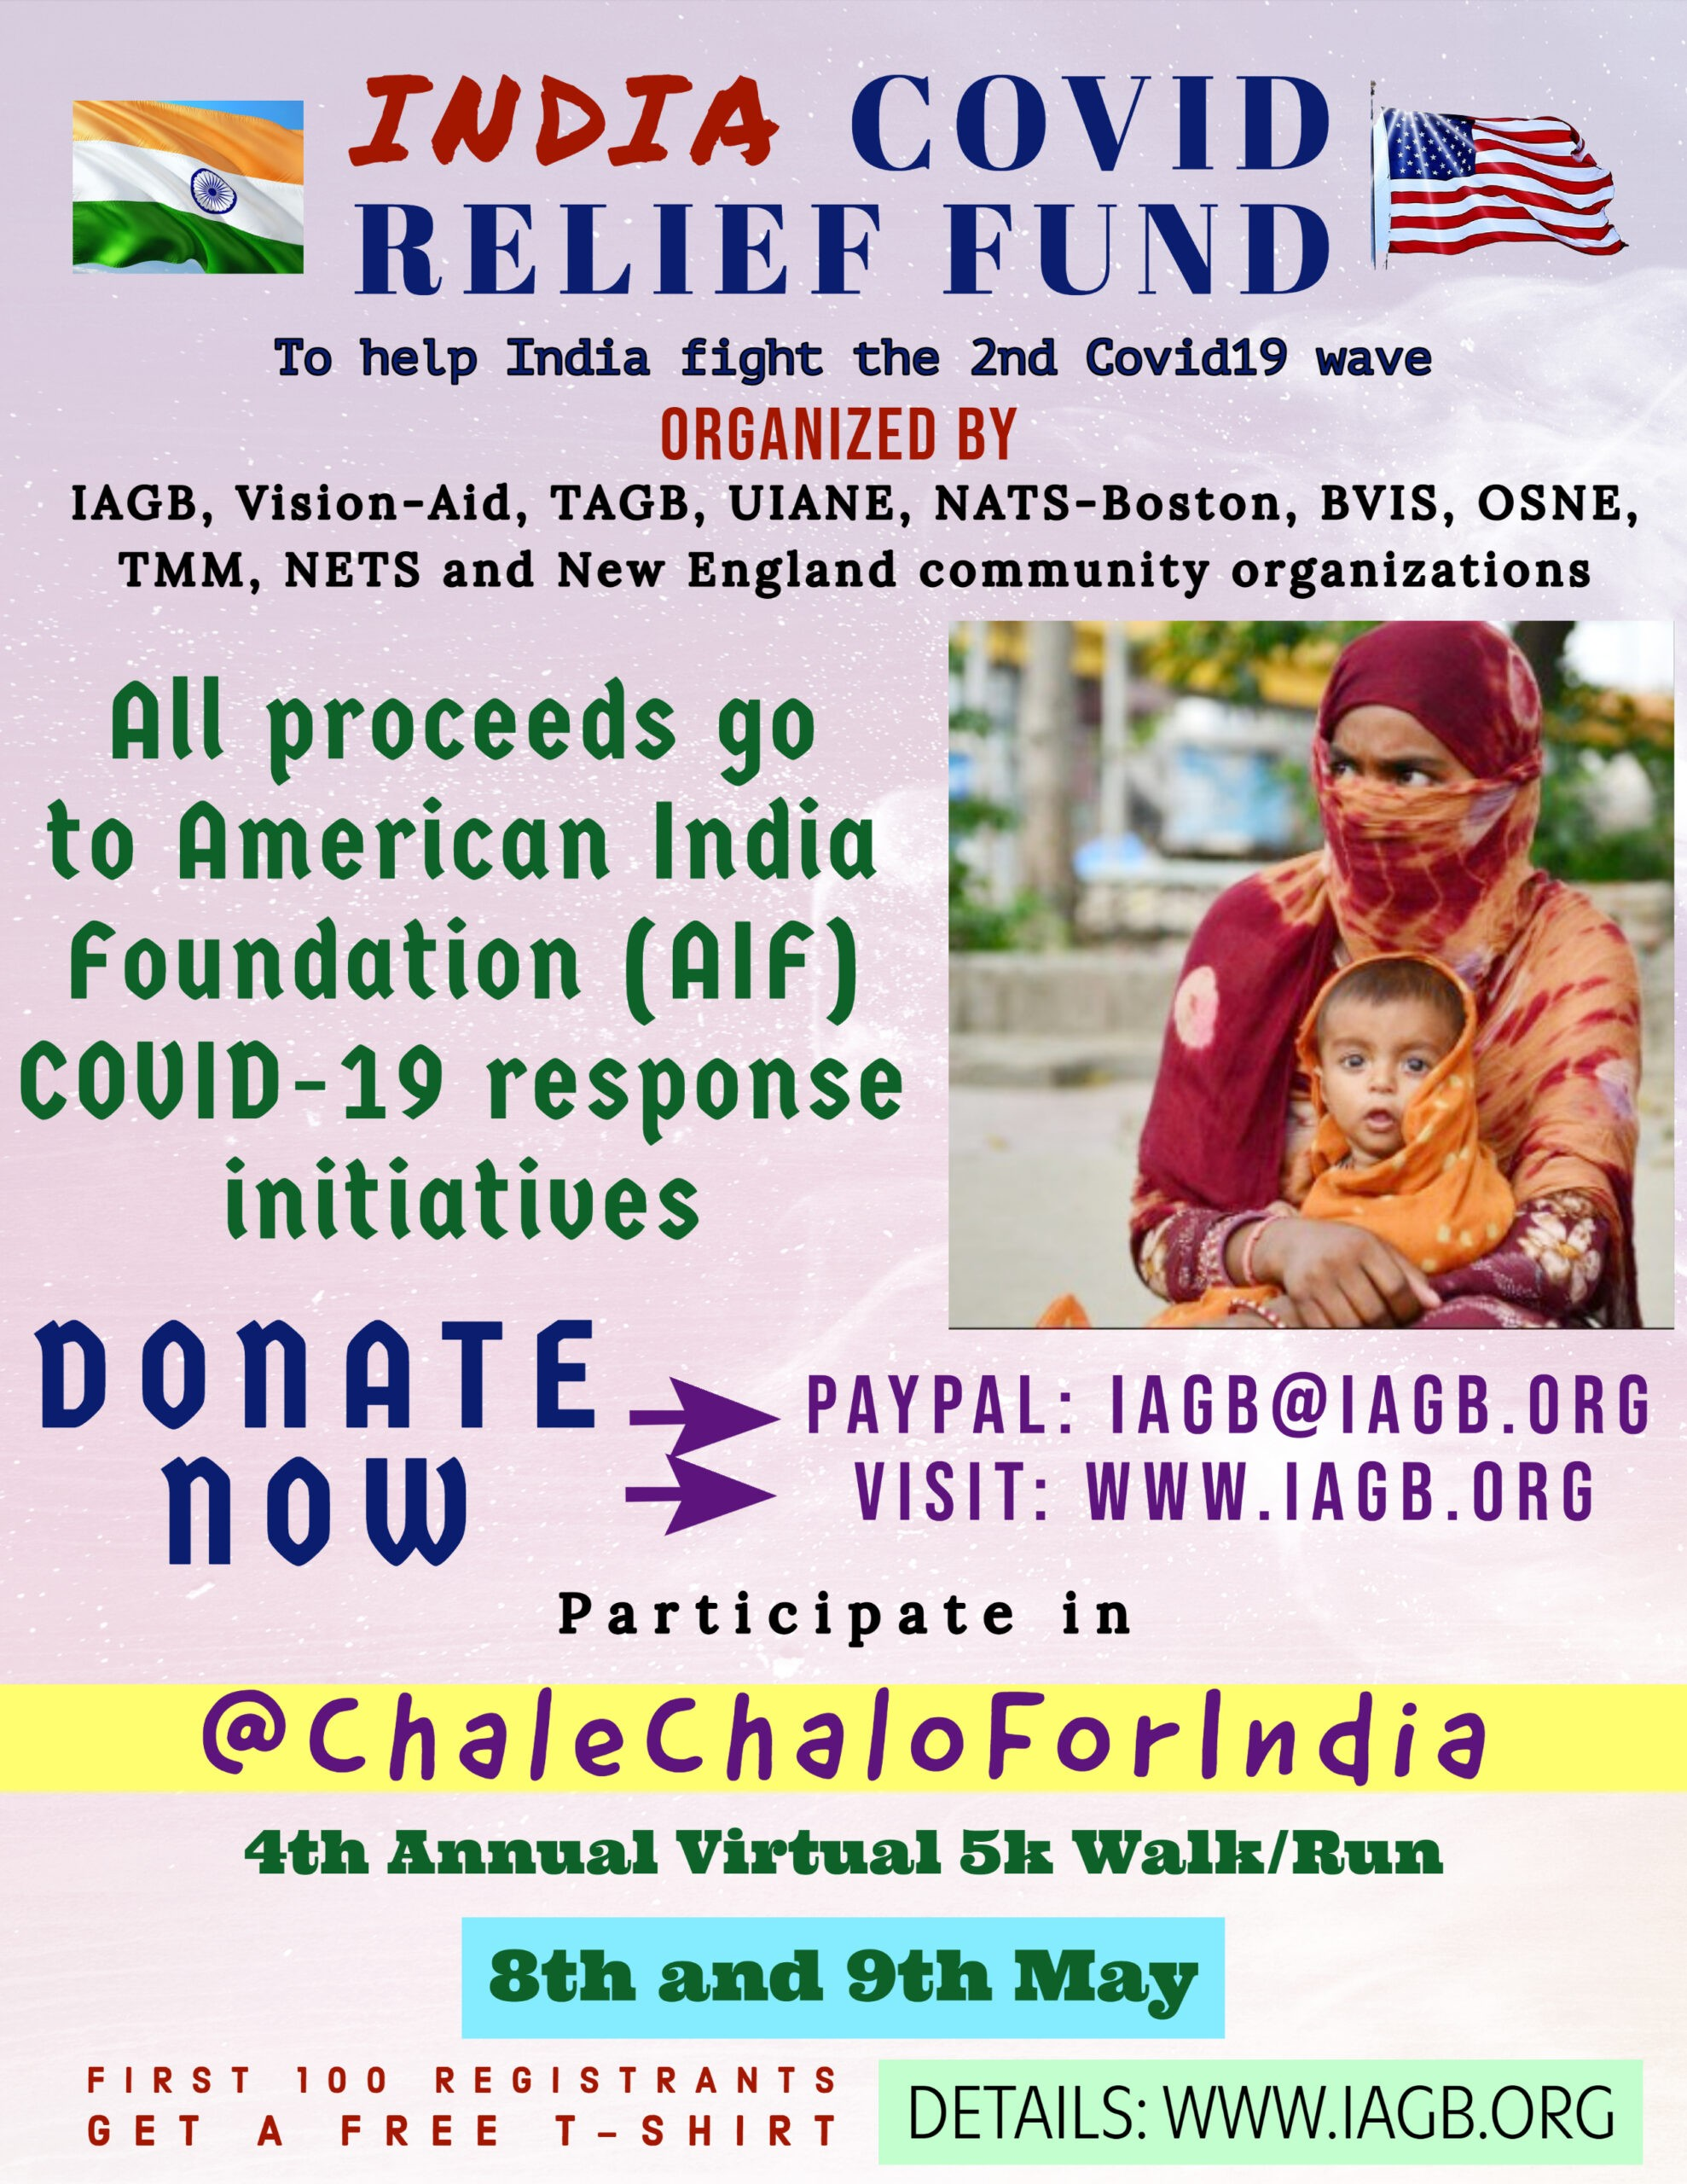 Chale Chalo forIndia